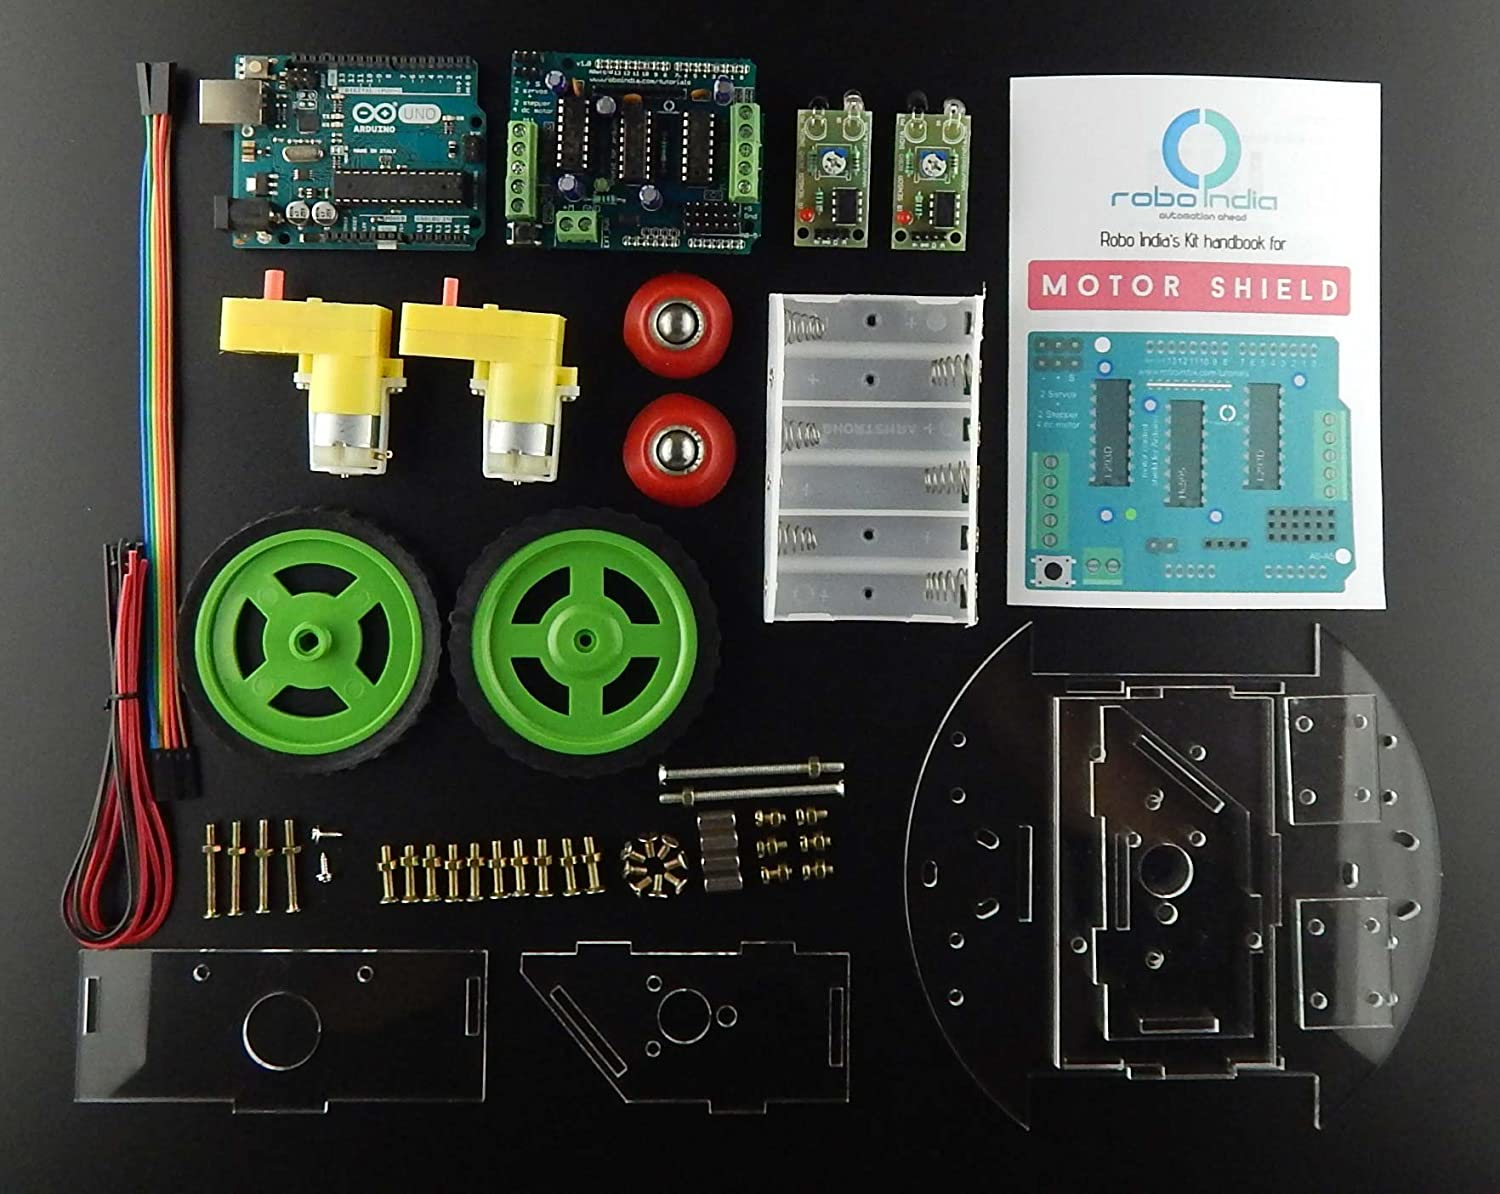 Robo India Dvlf 3 Line Follower Kit On Da Vinci Robot With Arduino Mpu6050 Wiring Diagram Uno Compatible Board Industrial Scientific